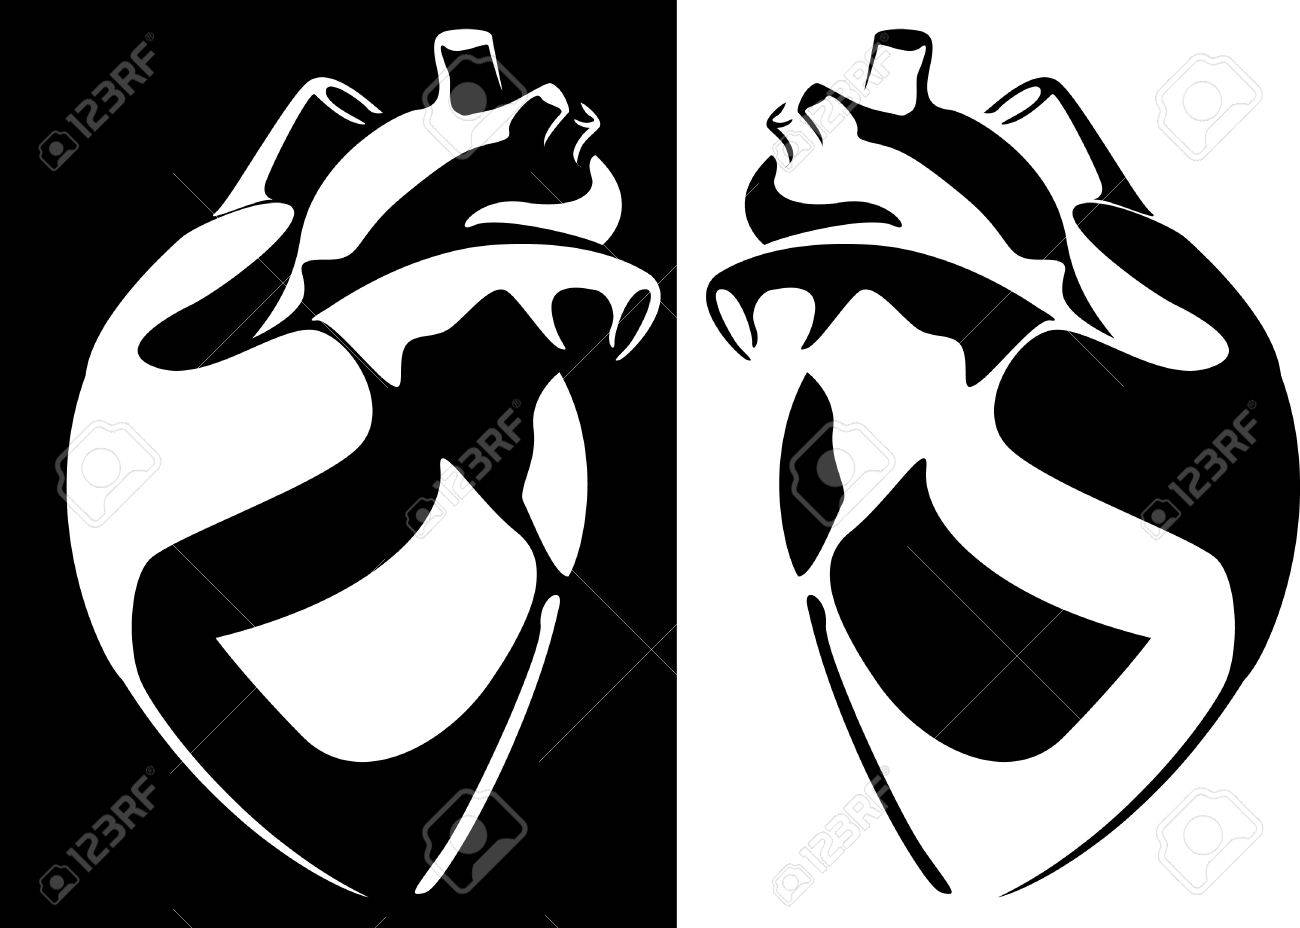 Human Heart Vector Black And White Heart on a Black And White